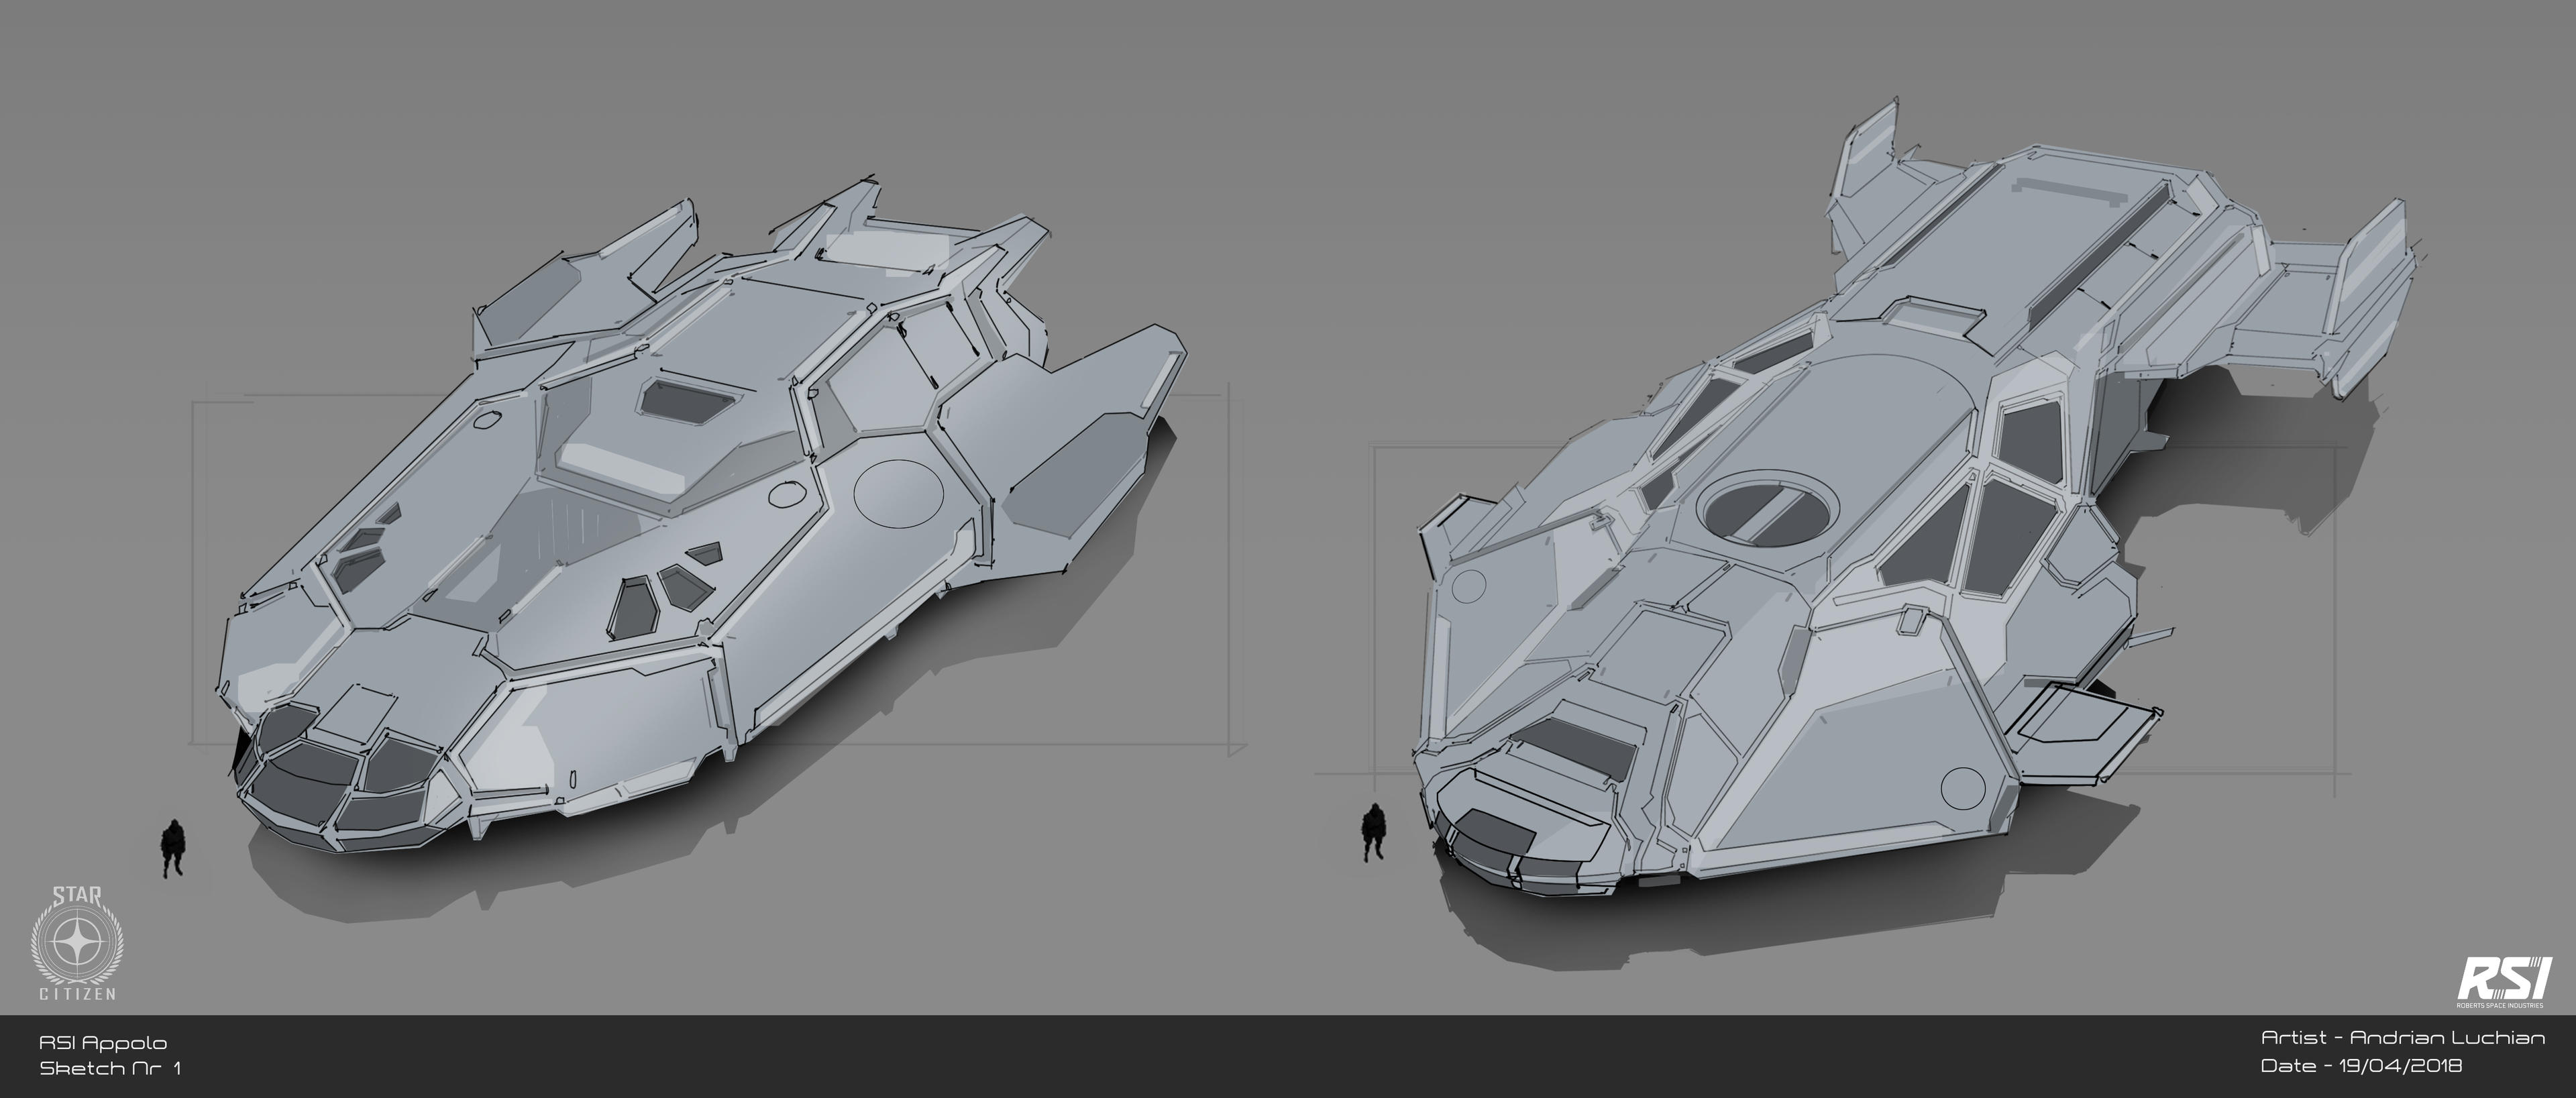 RSI APOLLO CONCEPT ART 04